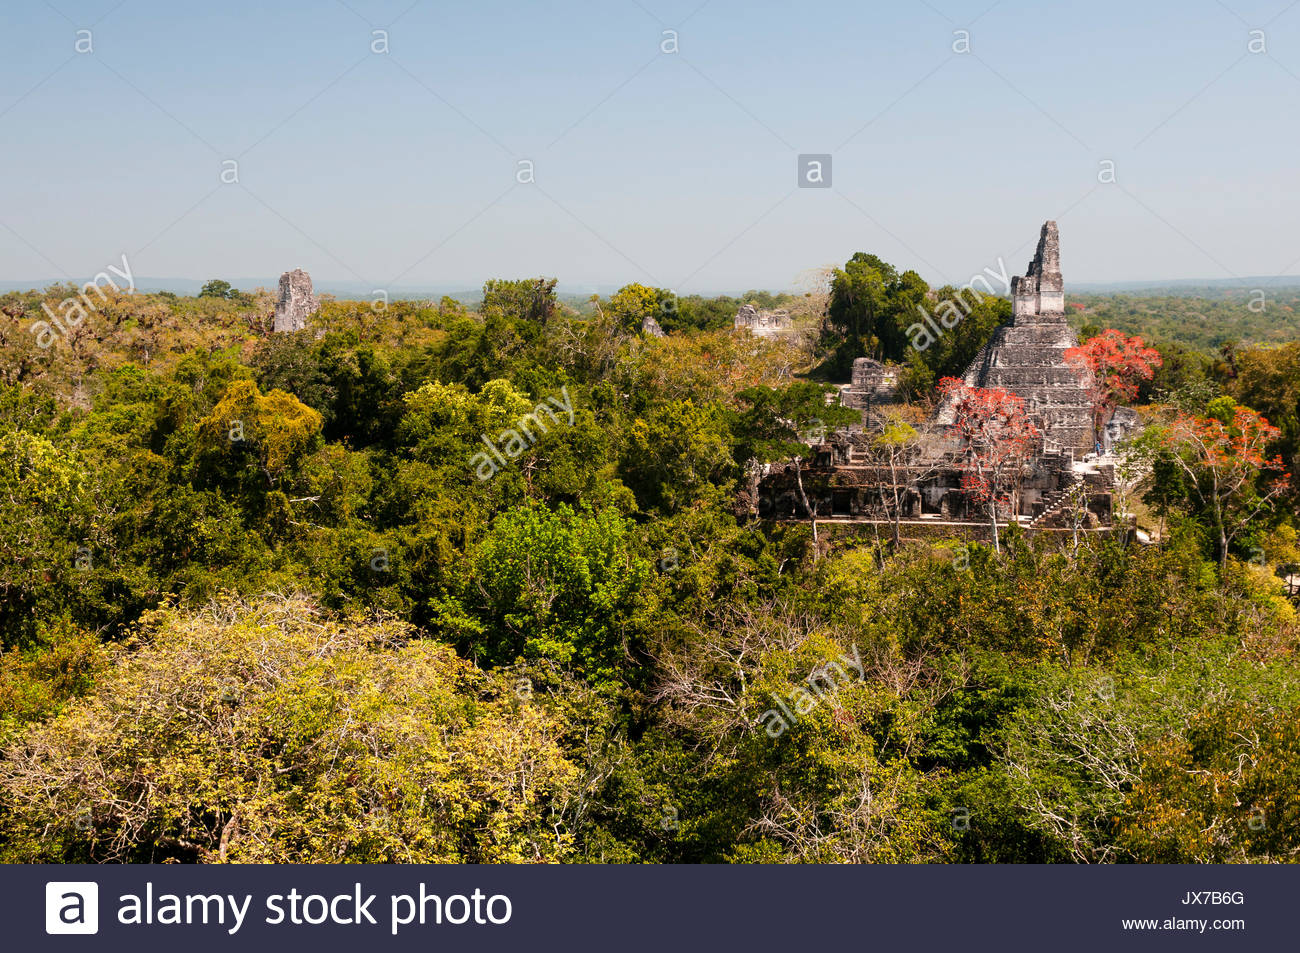 Temple I above the treetops in the jungle. - Stock Image